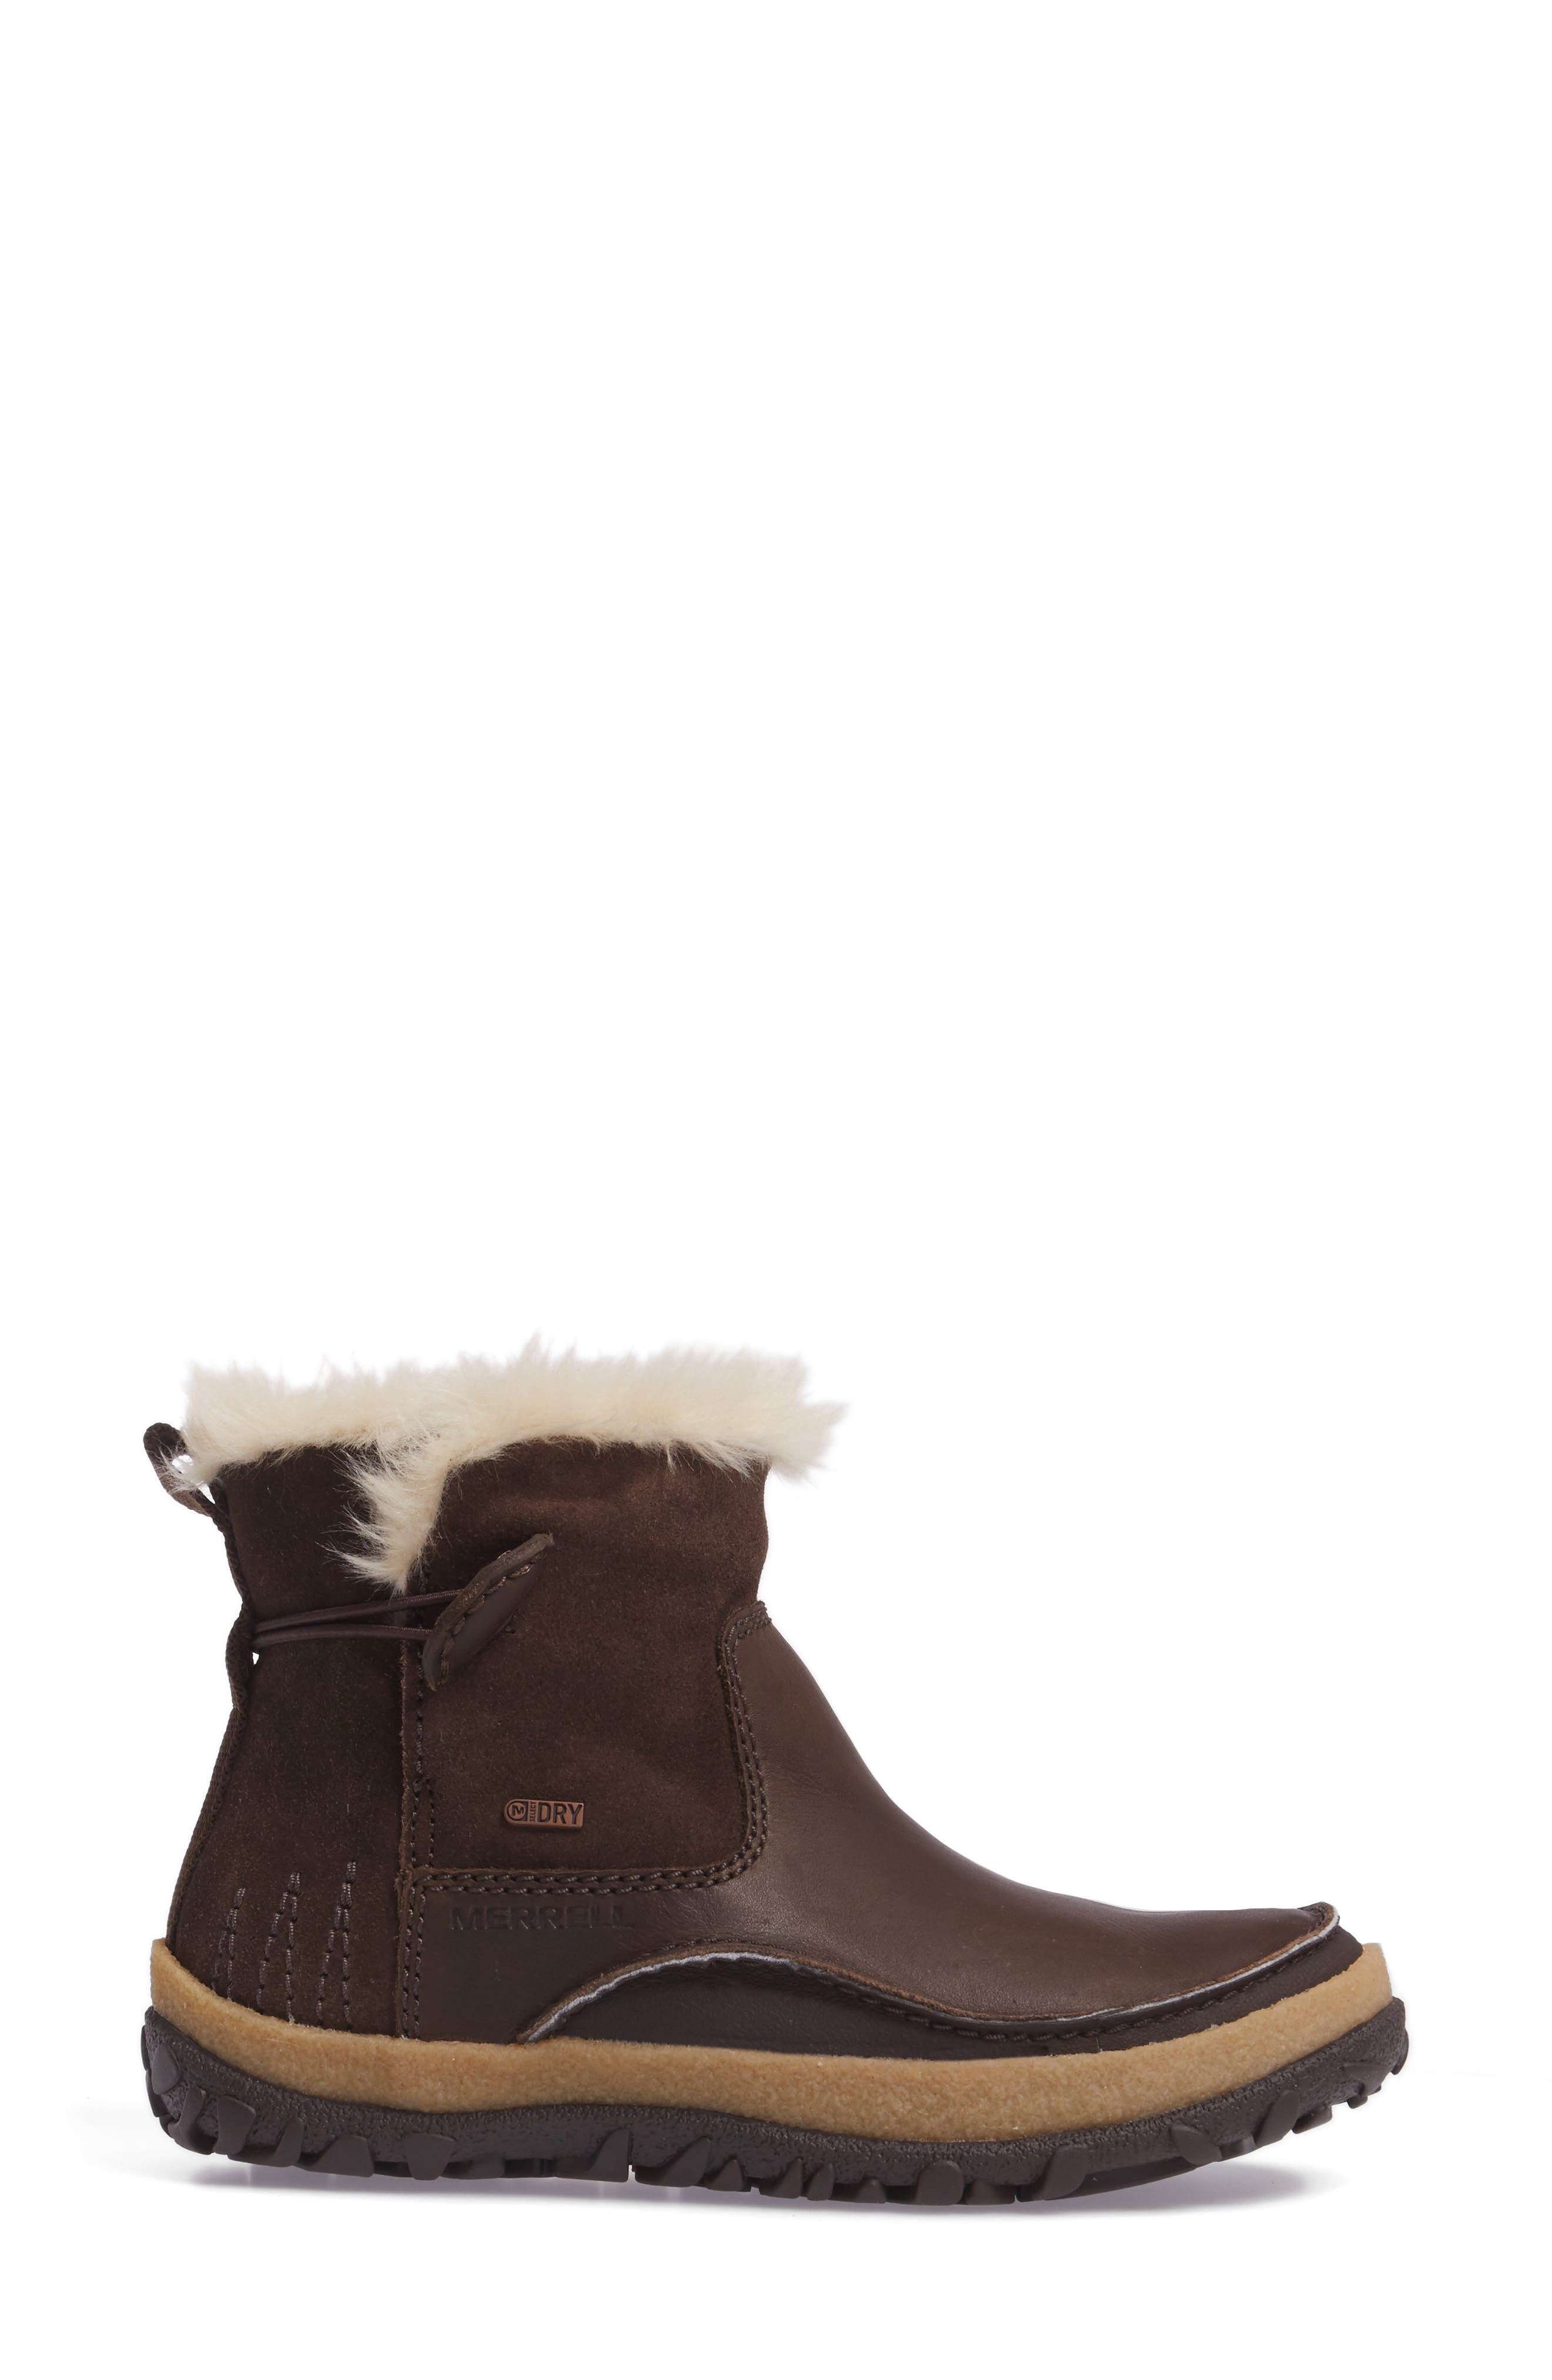 Tremblant Pull-On Polar Waterproof Bootie,                             Alternate thumbnail 3, color,                             Espresso Leather